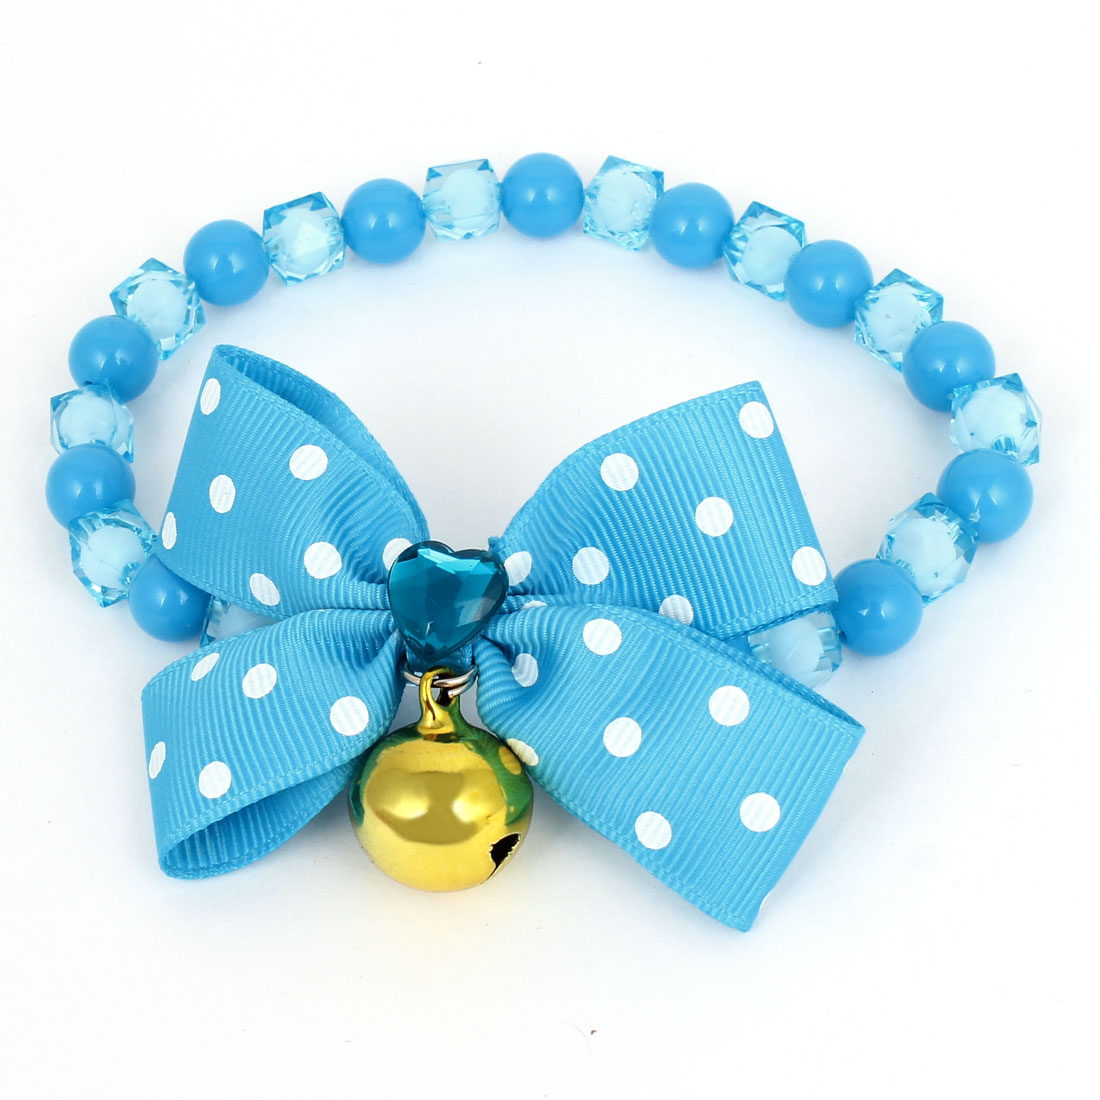 Metal Bell Pendant Bowtie Accent Pet Dog Plastic Beads Collar Necklace Blue S